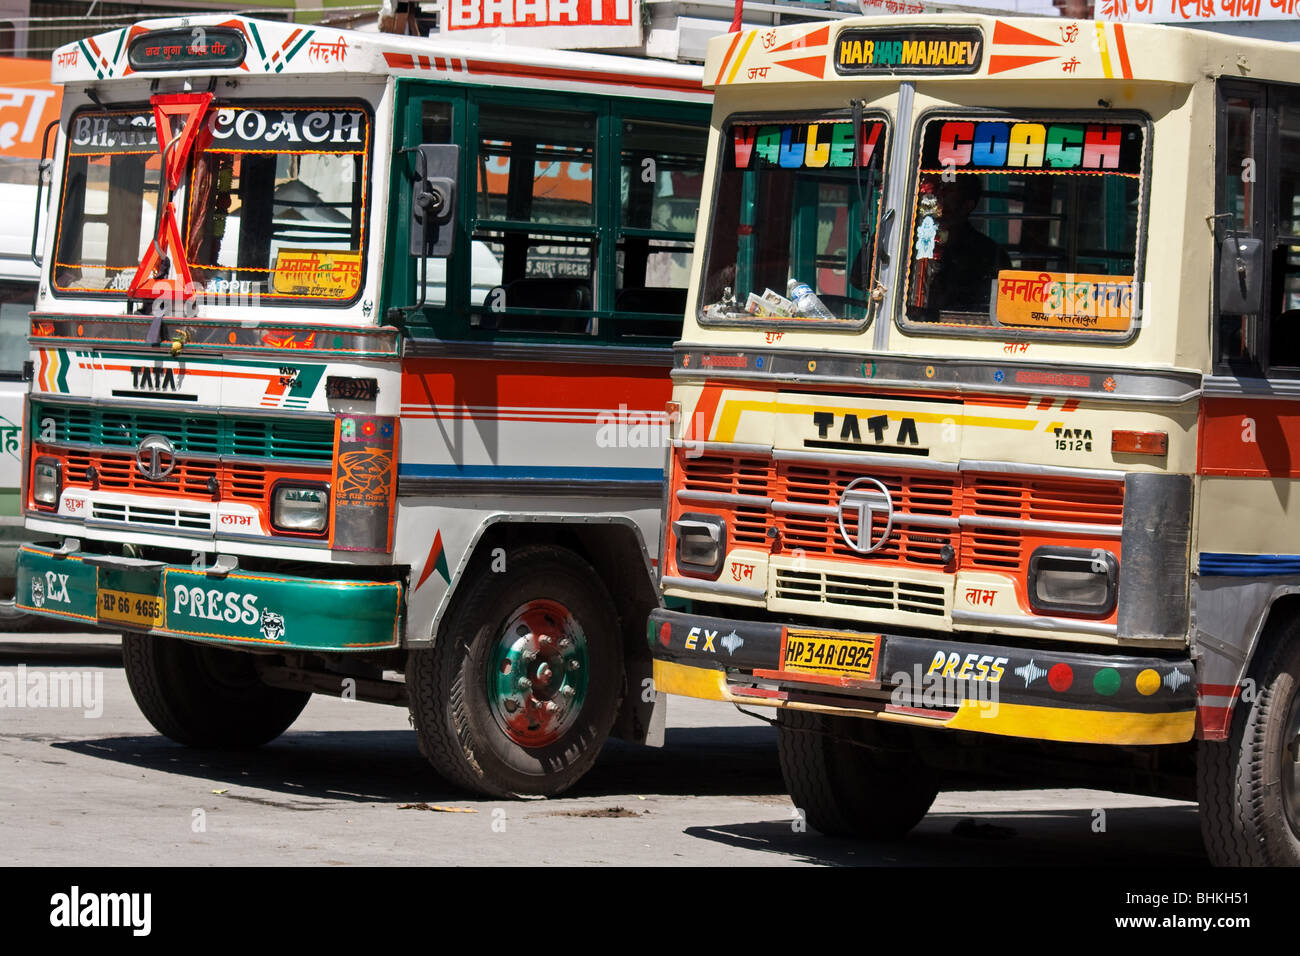 Indian Tata buses in Manali, India - Stock Image